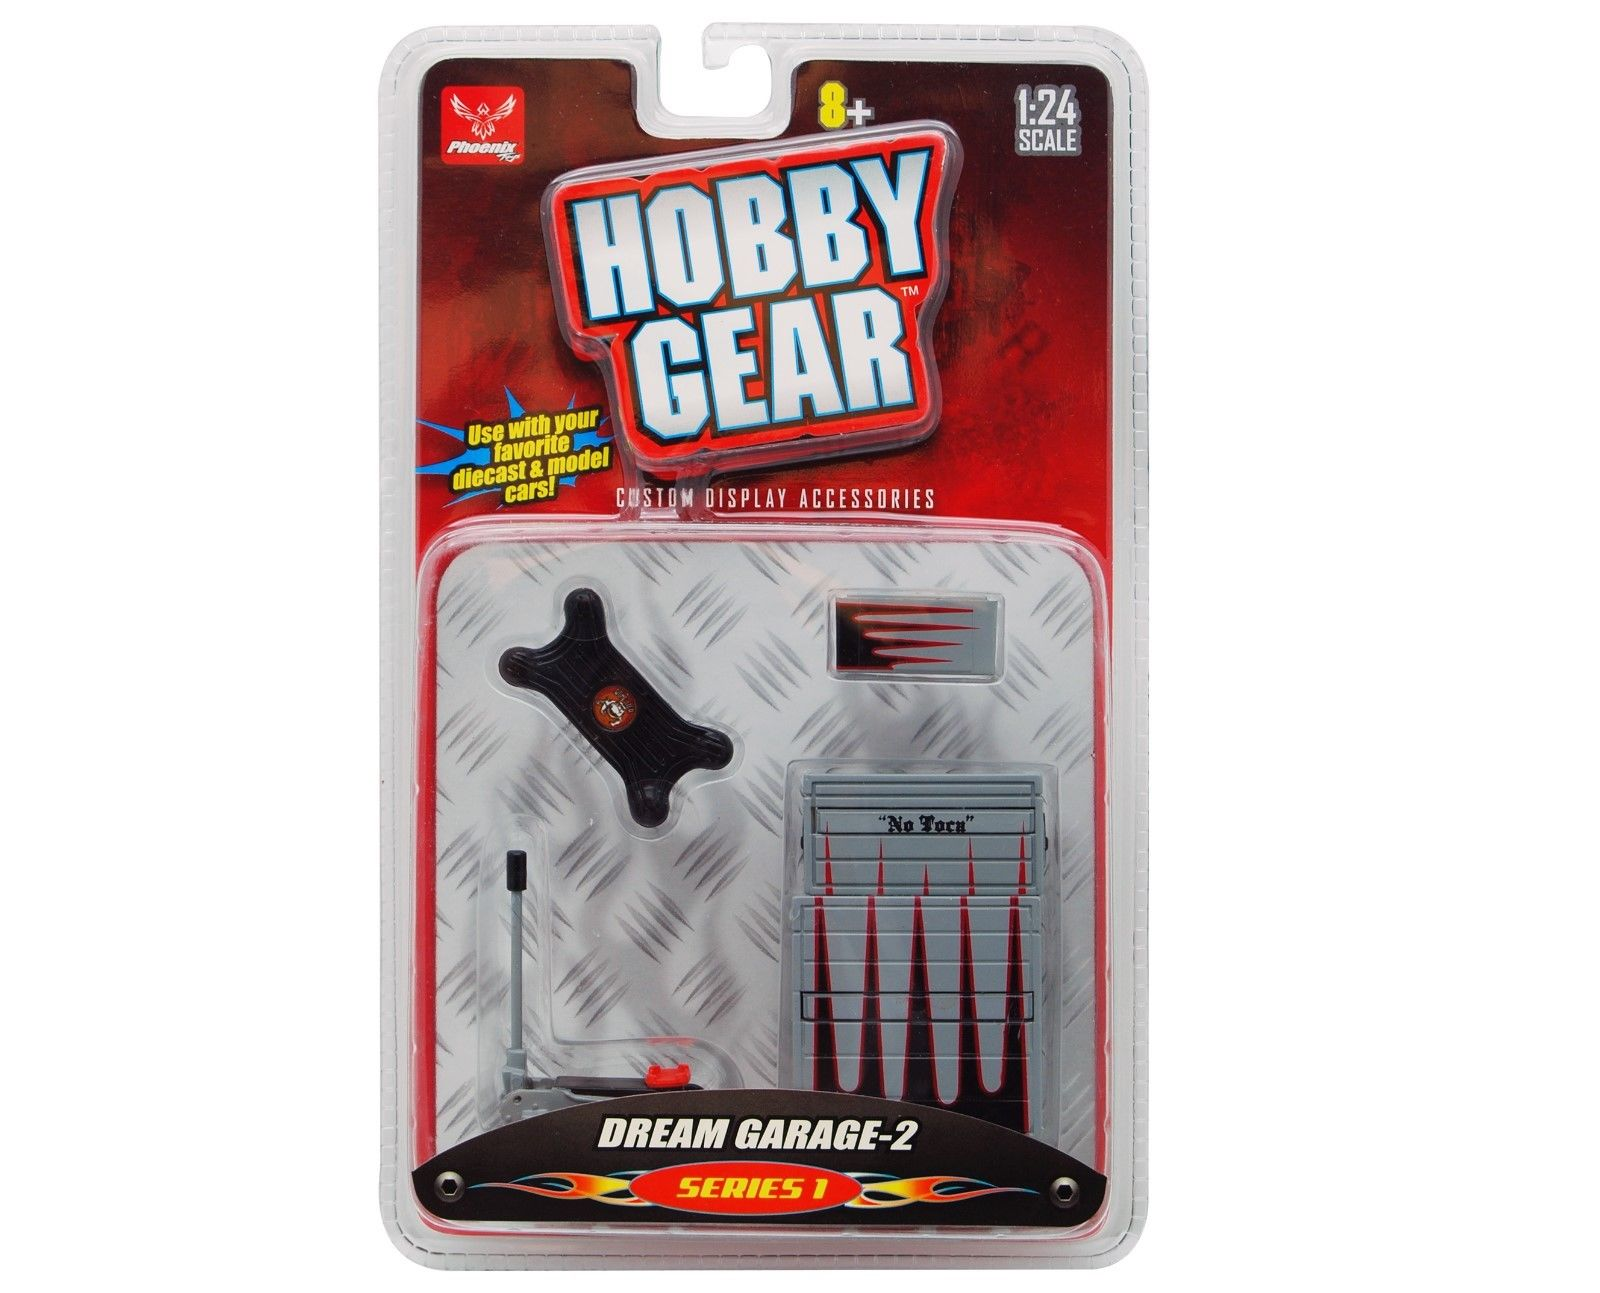 DREAM GARAGE 2 1:24 SCALE HOBBY GEAR GARAGE DIORAMA TOOL BOX JACK CREEPER